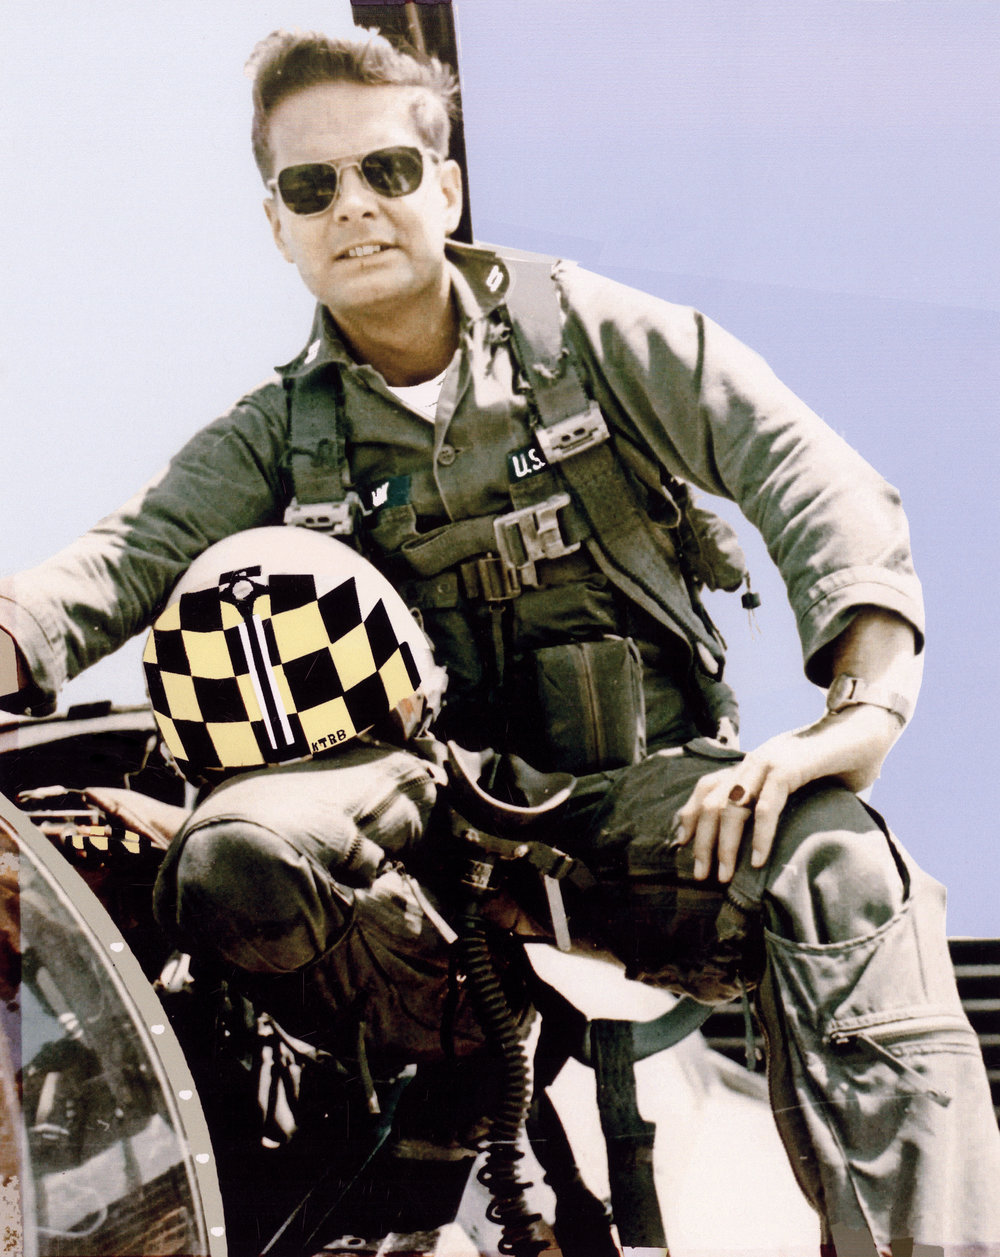 Dr. Guy Clark in Vietnam, 1966-67 (C) Guy Clark, M.D.